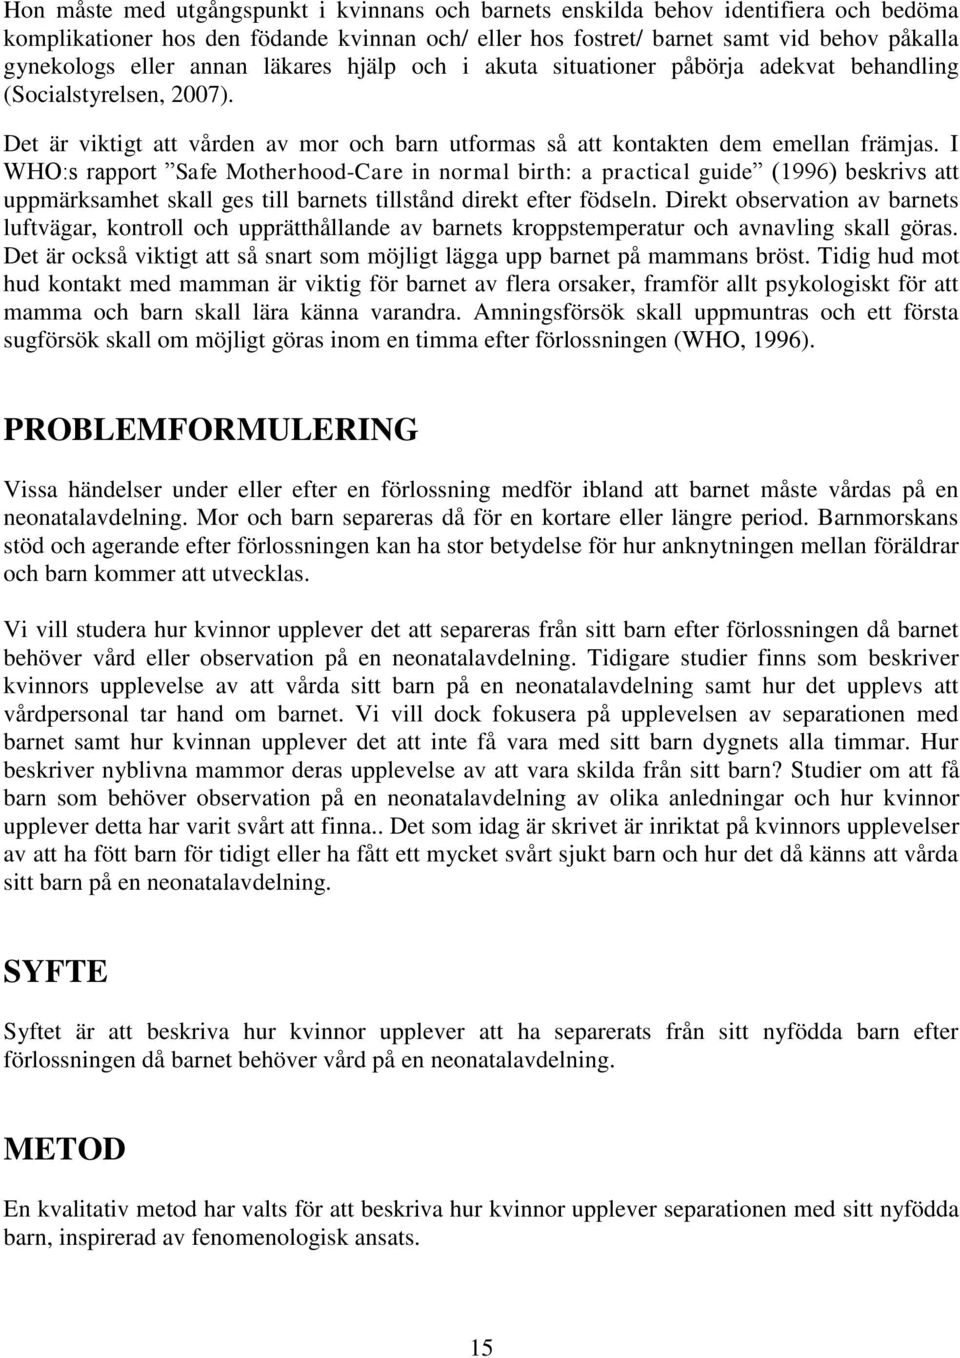 I WHO:s rapport Safe Motherhood-Care in normal birth: a practical guide (1996) beskrivs att uppmärksamhet skall ges till barnets tillstånd direkt efter födseln.